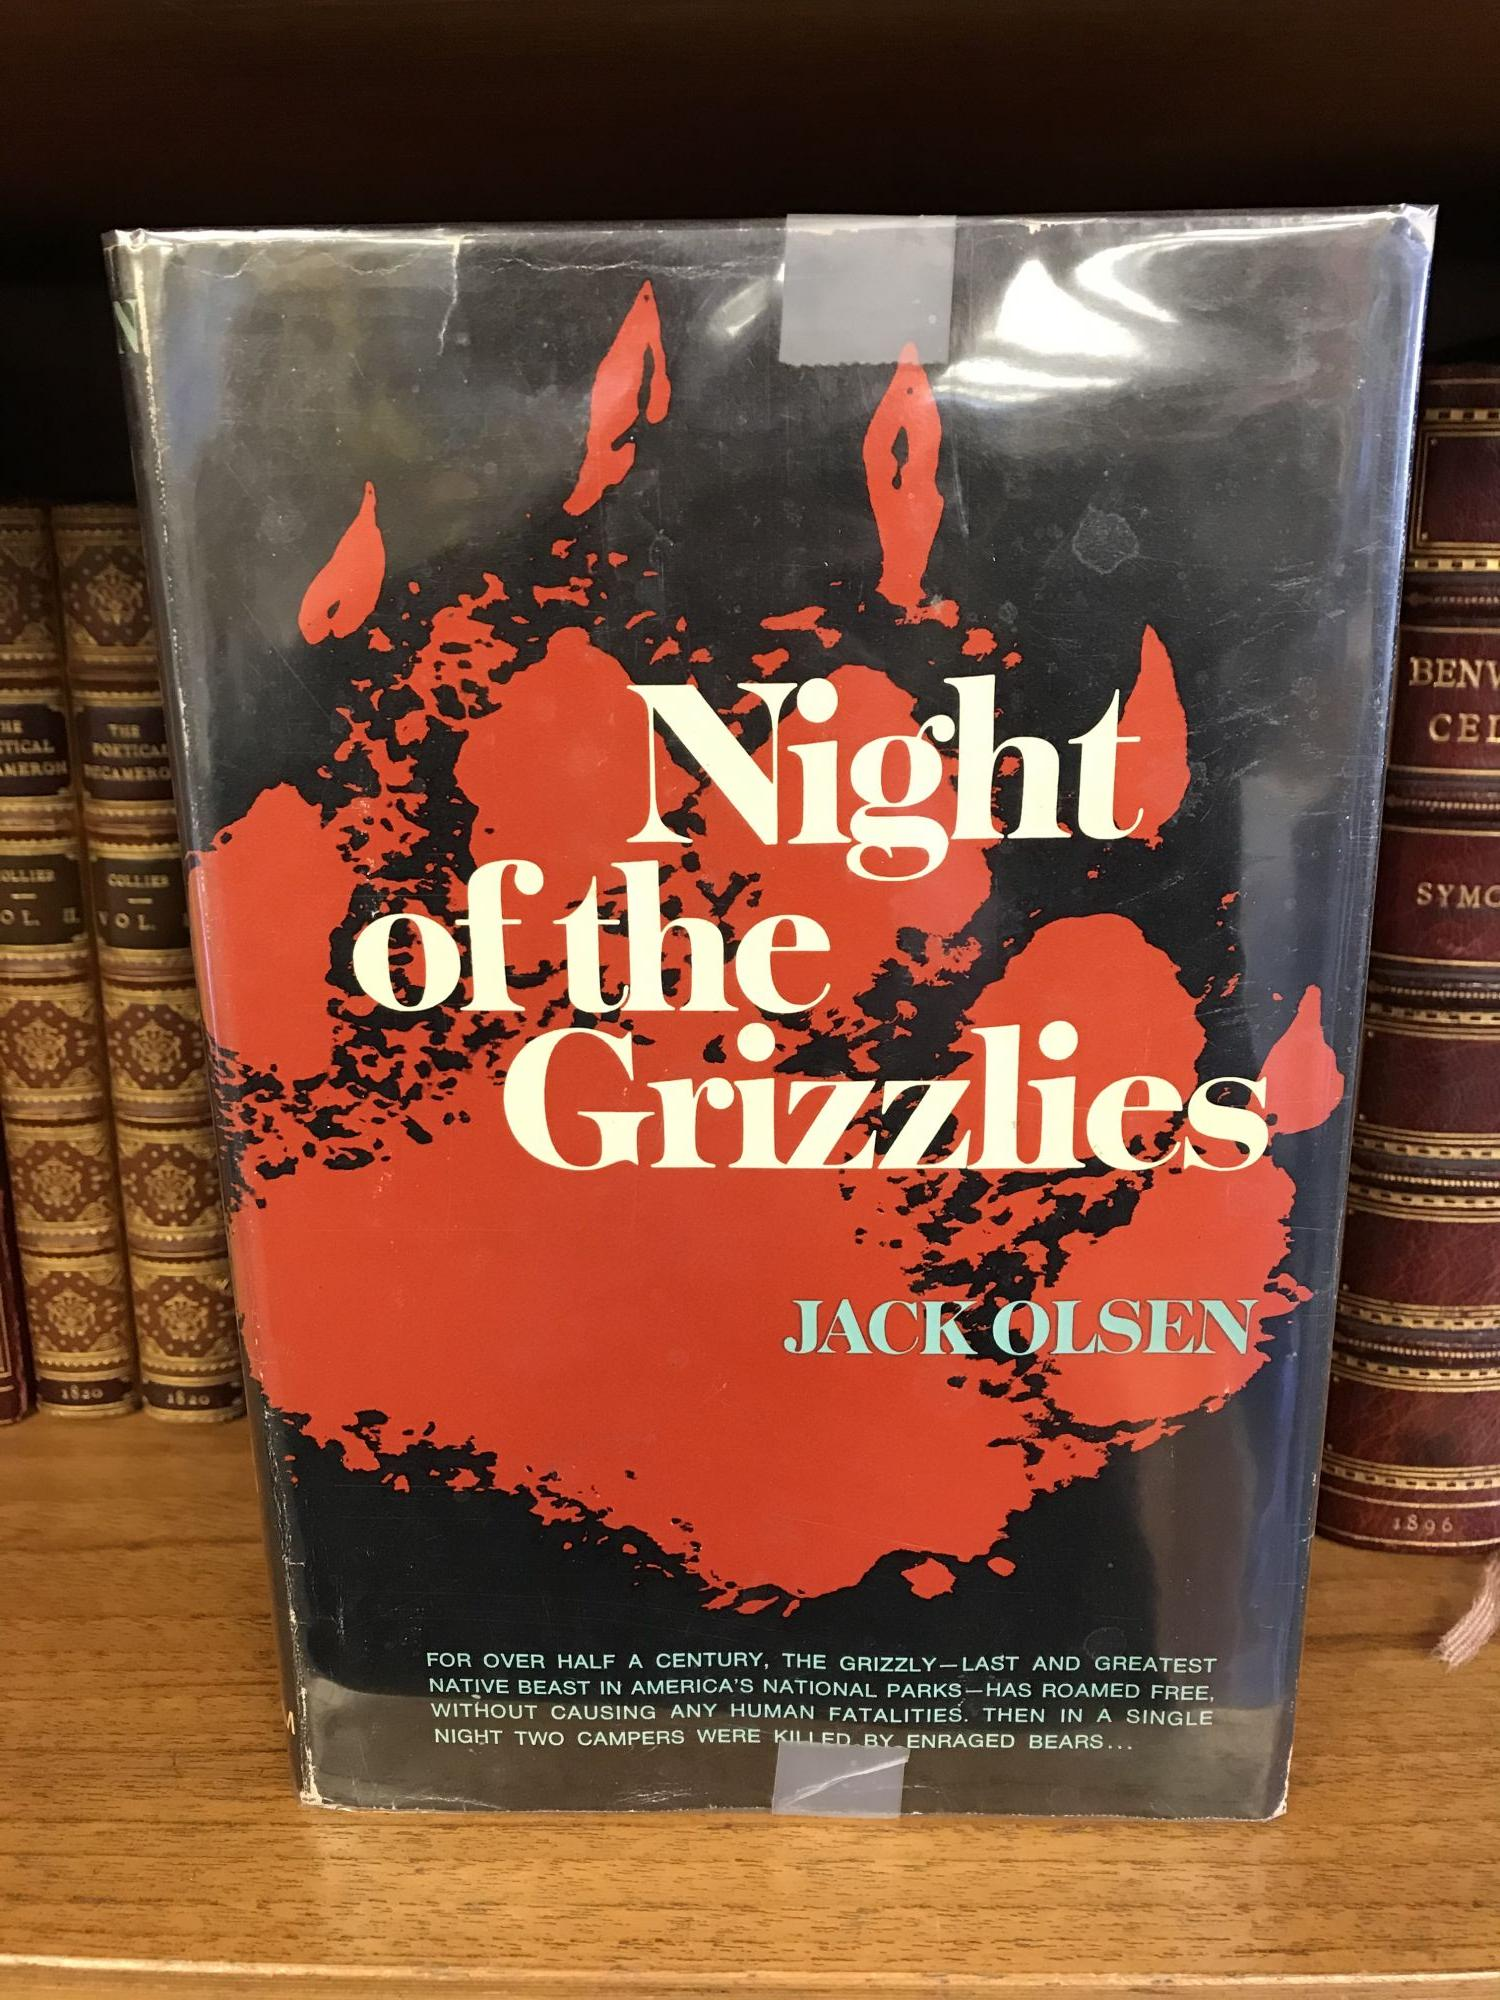 NIGHT OF THE GRIZZLIES. Jack Olsen.